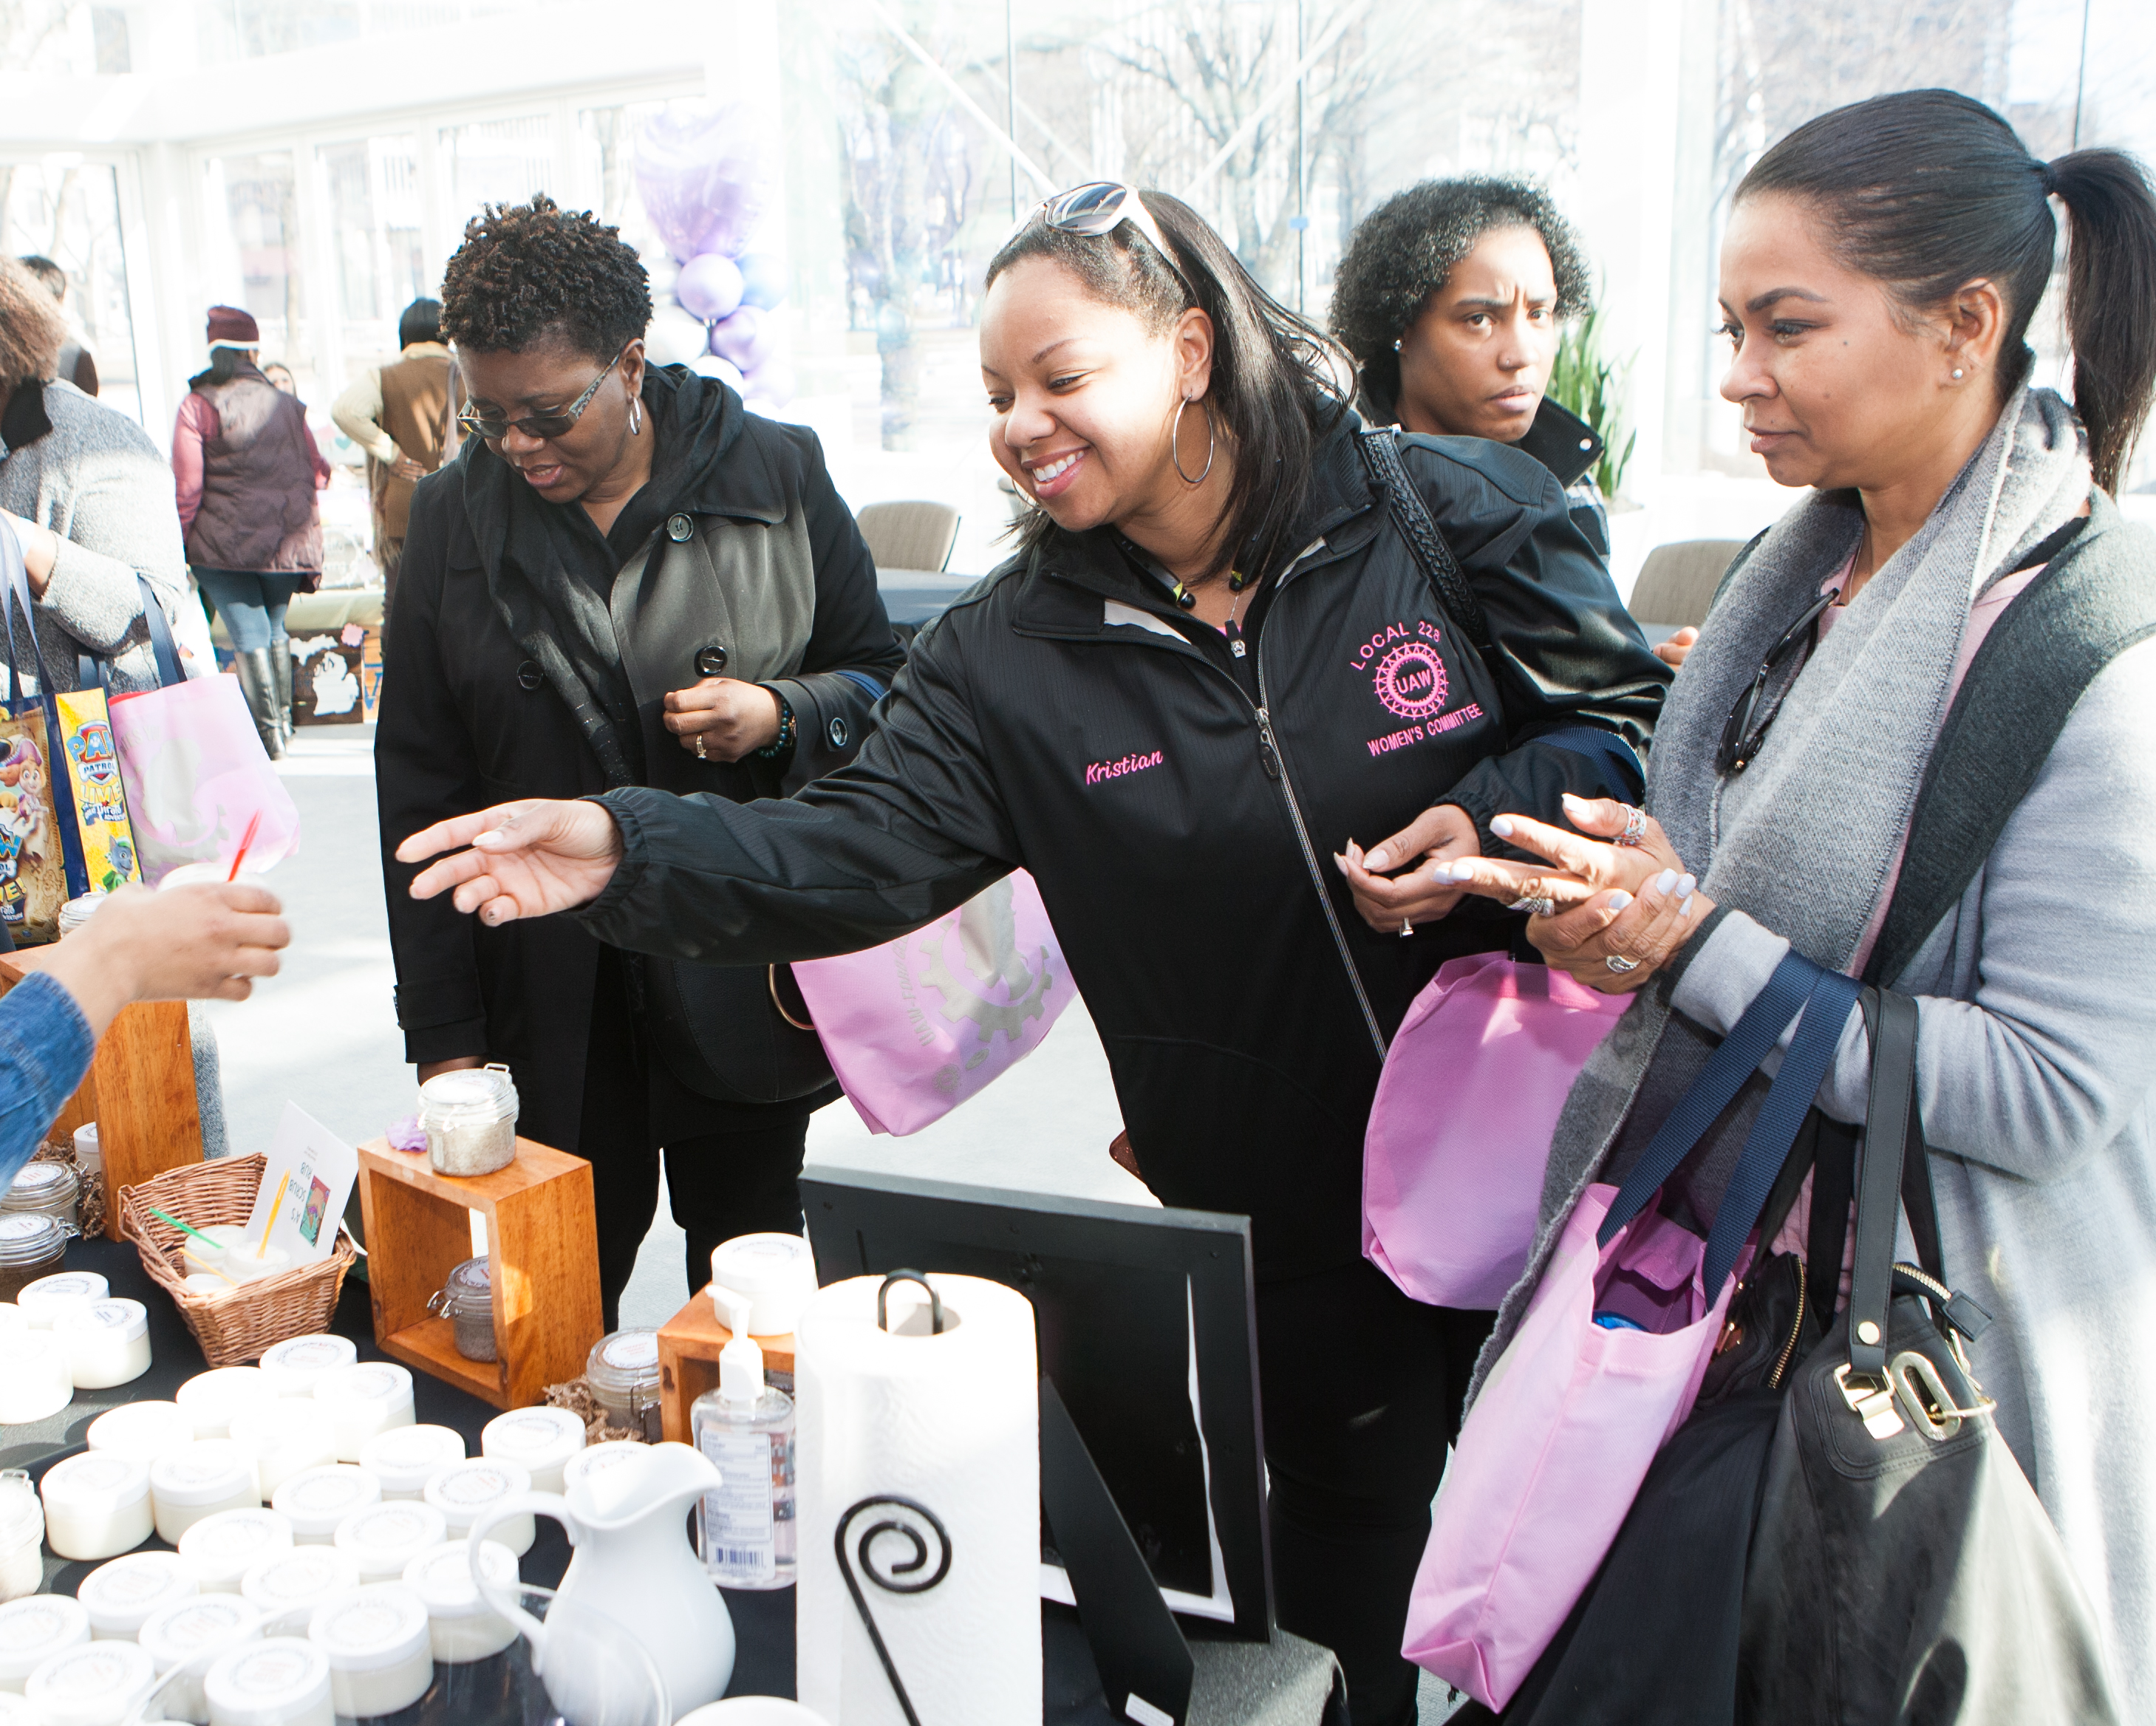 UAW-Ford Celebrates Women's History Month With Women's Empowerment Expo